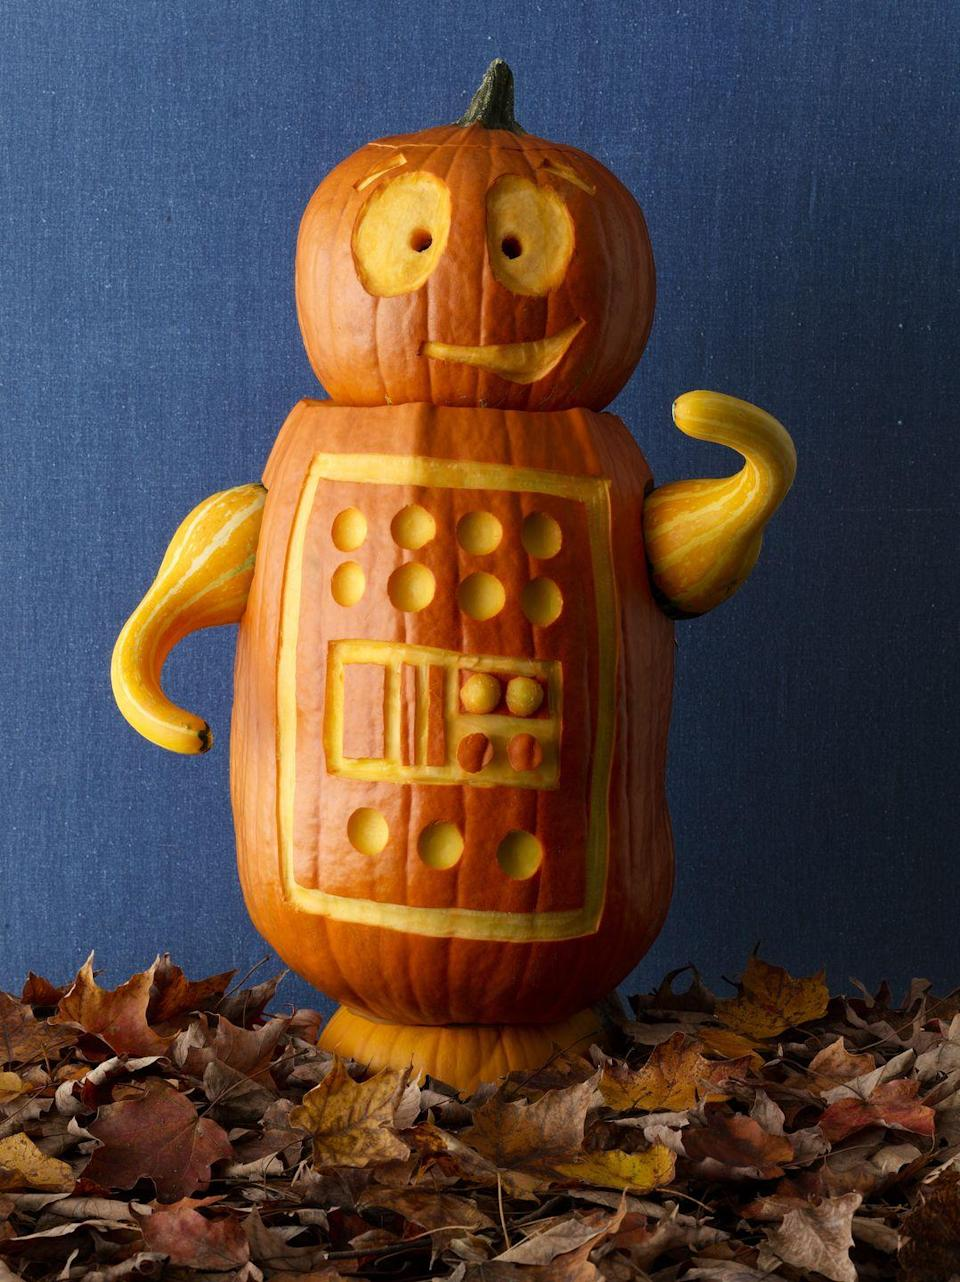 """<p>We can't stop smiling at this little robot. Minimal carving is needed, which is a plus if you want to make more than one. Hint: A melon baller will make creating all those little """"buttons"""" so much easier.</p><p><a href=""""https://www.womansday.com/home/crafts-projects/g950/funny-pumpkin-carving-ideas/?slide=28"""" rel=""""nofollow noopener"""" target=""""_blank"""" data-ylk=""""slk:Get the tutorial at Woman's Day »"""" class=""""link rapid-noclick-resp""""><em>Get the tutorial at Woman's Day »</em> </a></p>"""